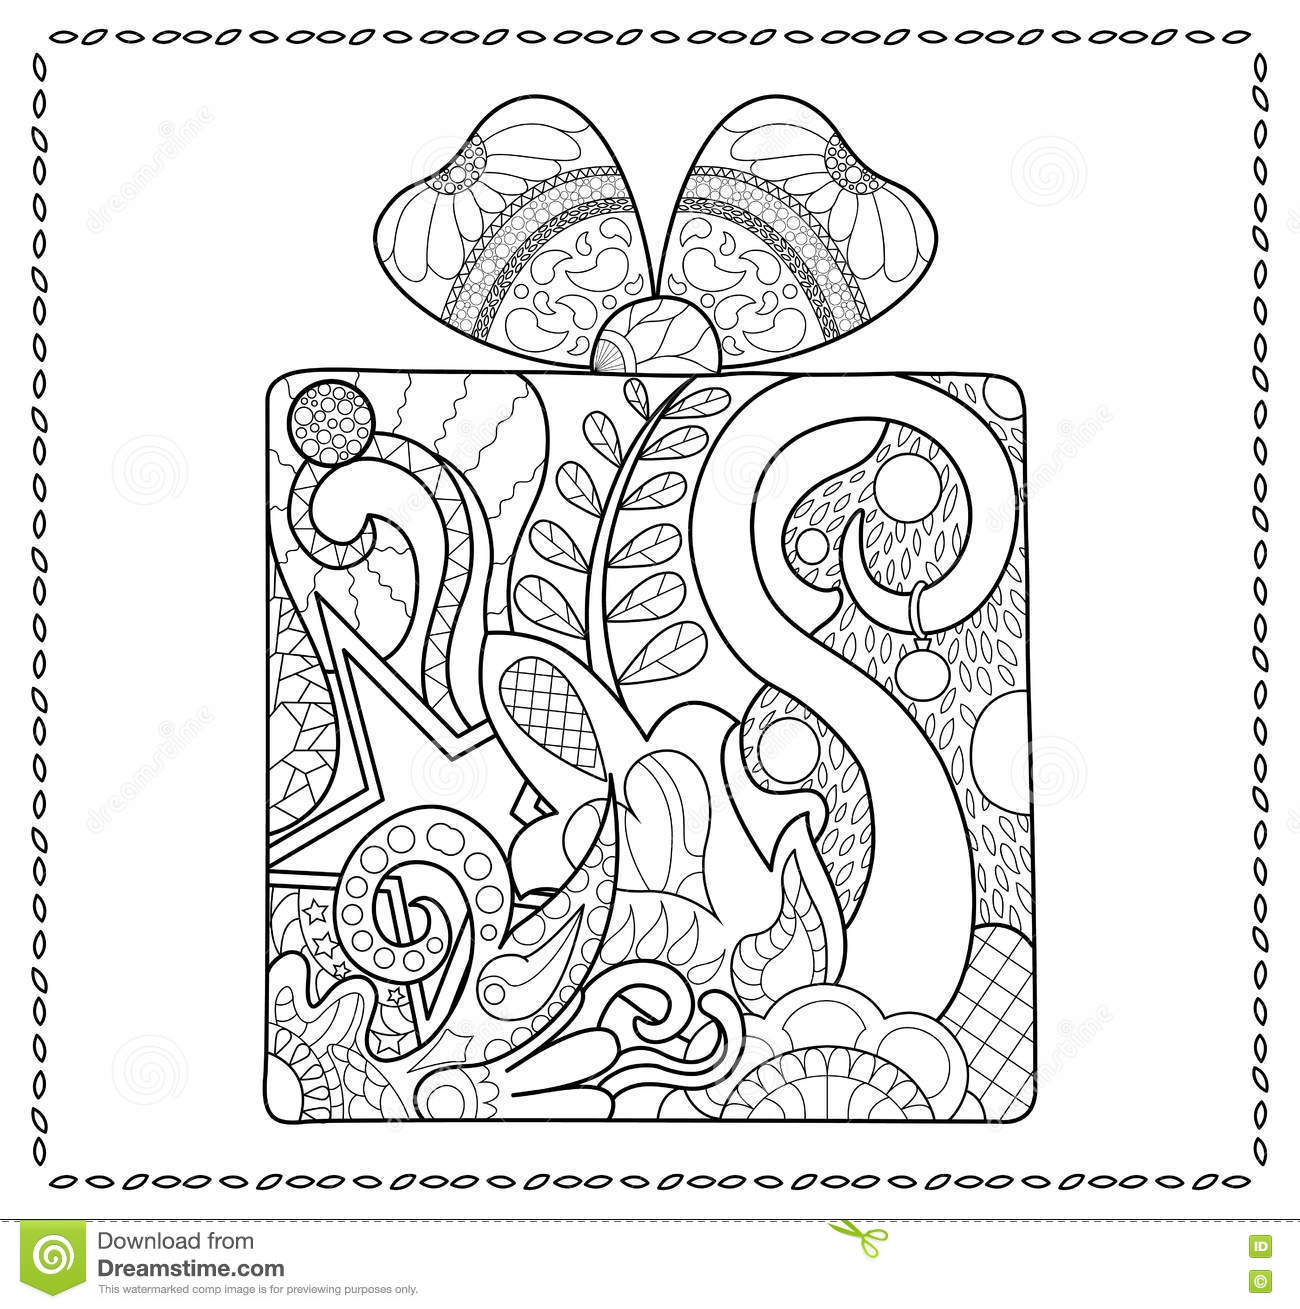 Christmas Gift Adult Coloring Page New Year Present For